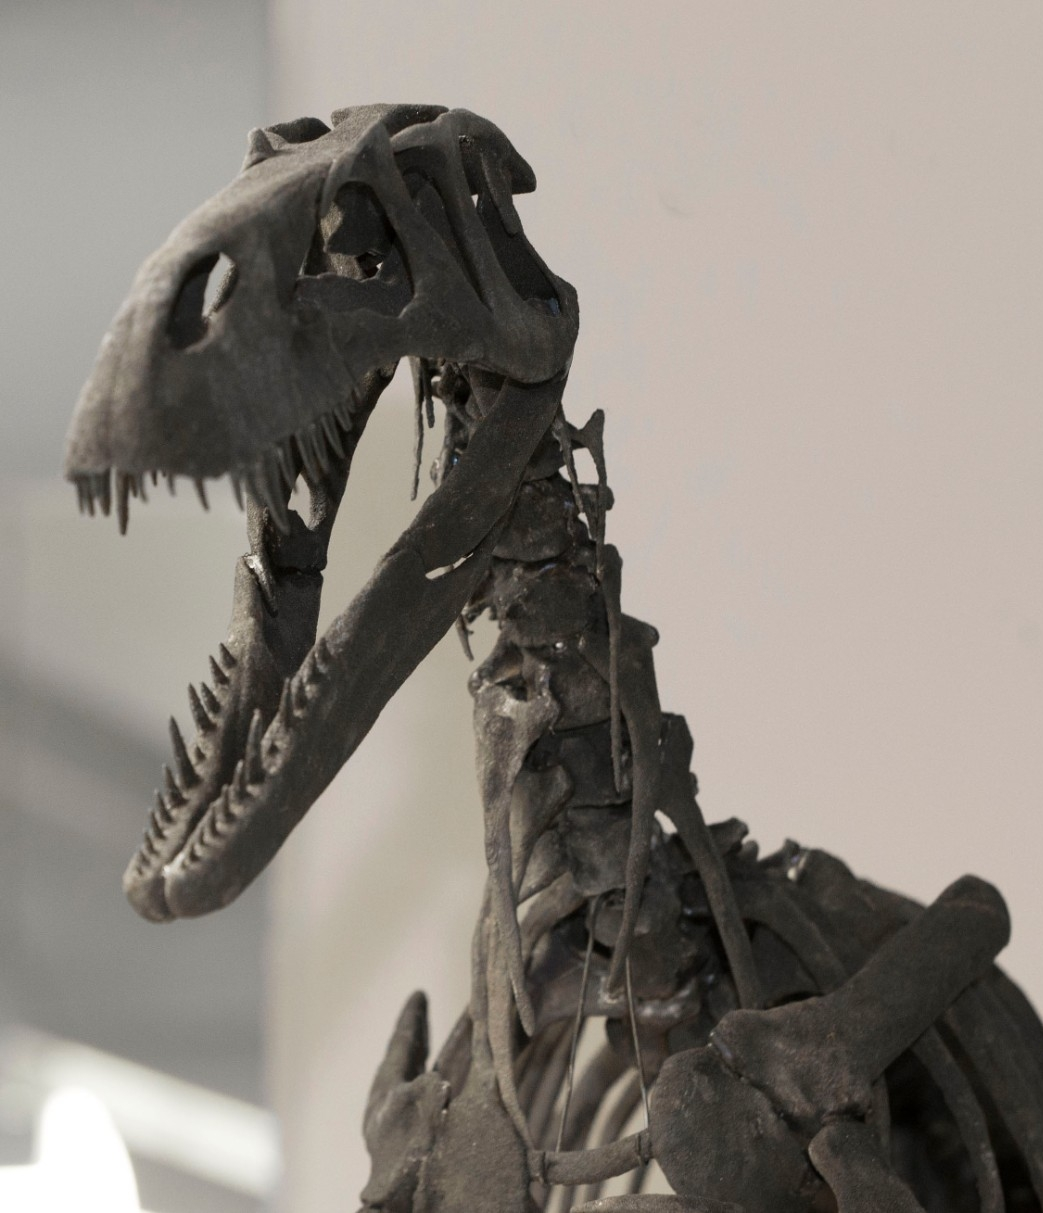 A scale model of the Torvosaurus sits on a cabinet.